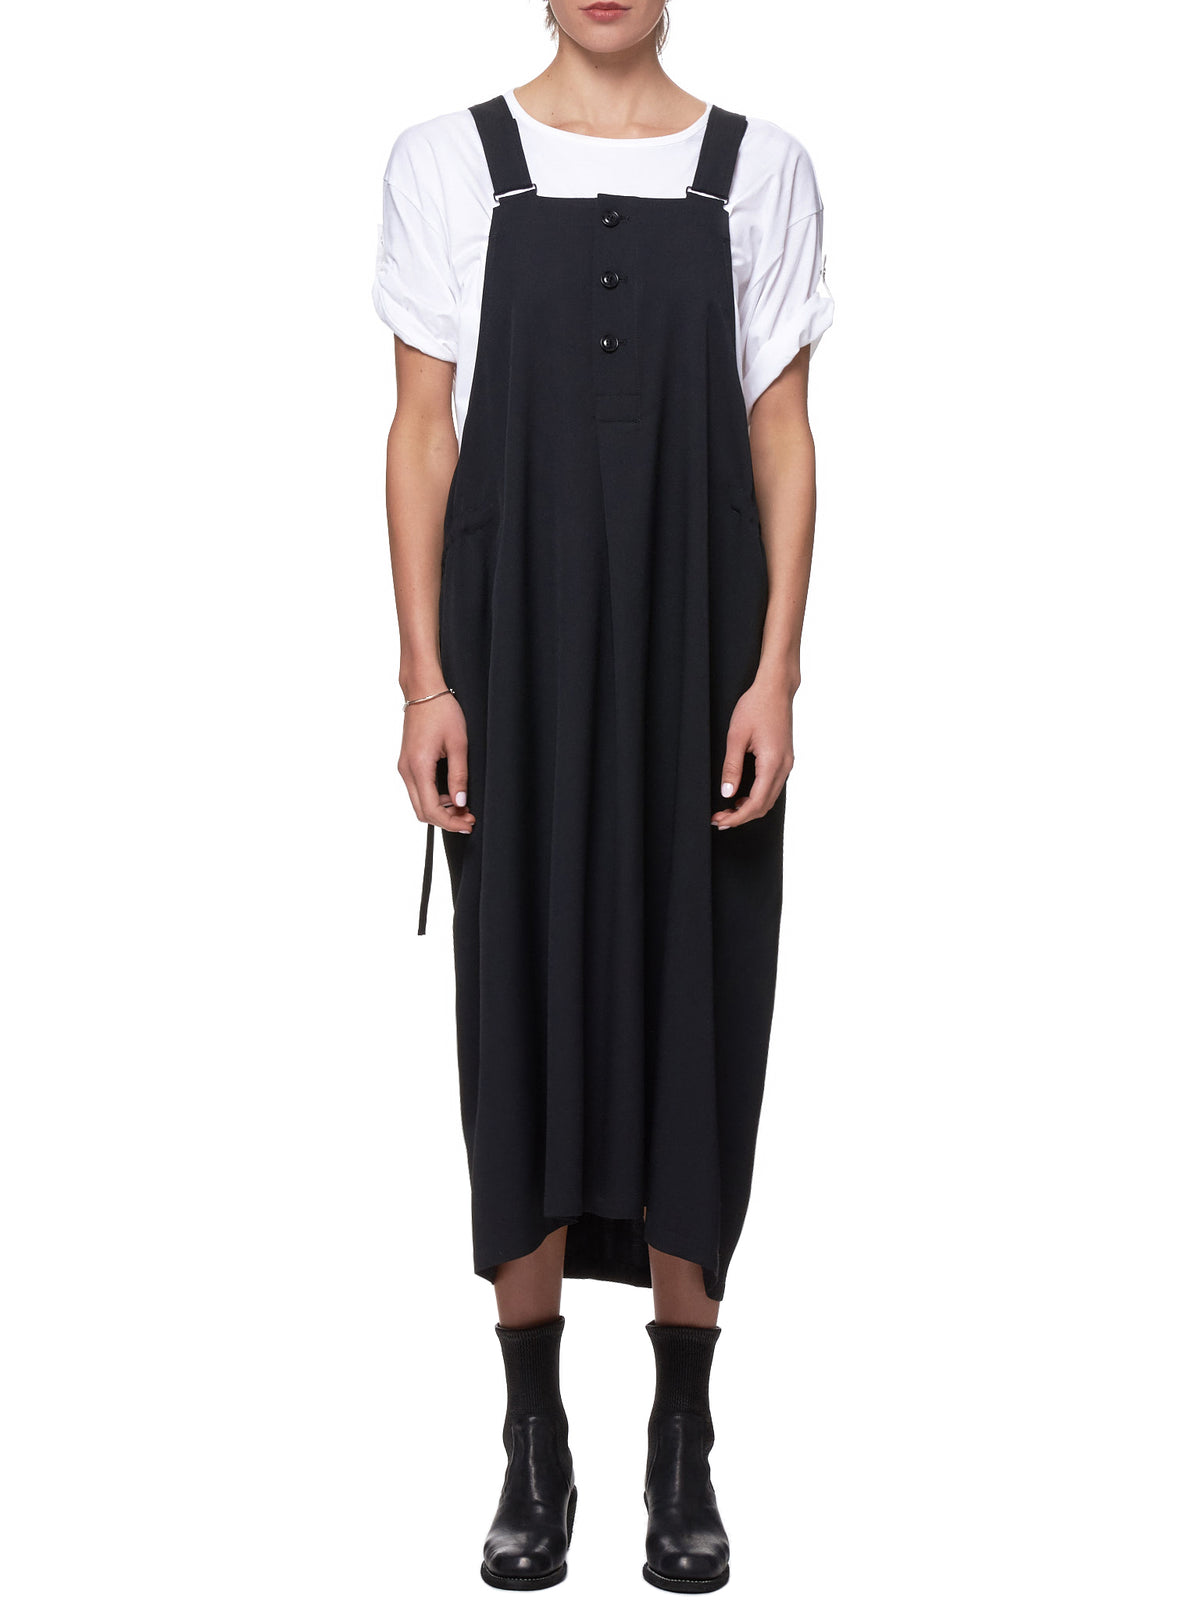 Overall Dress (YH-D11-100-BLACK)